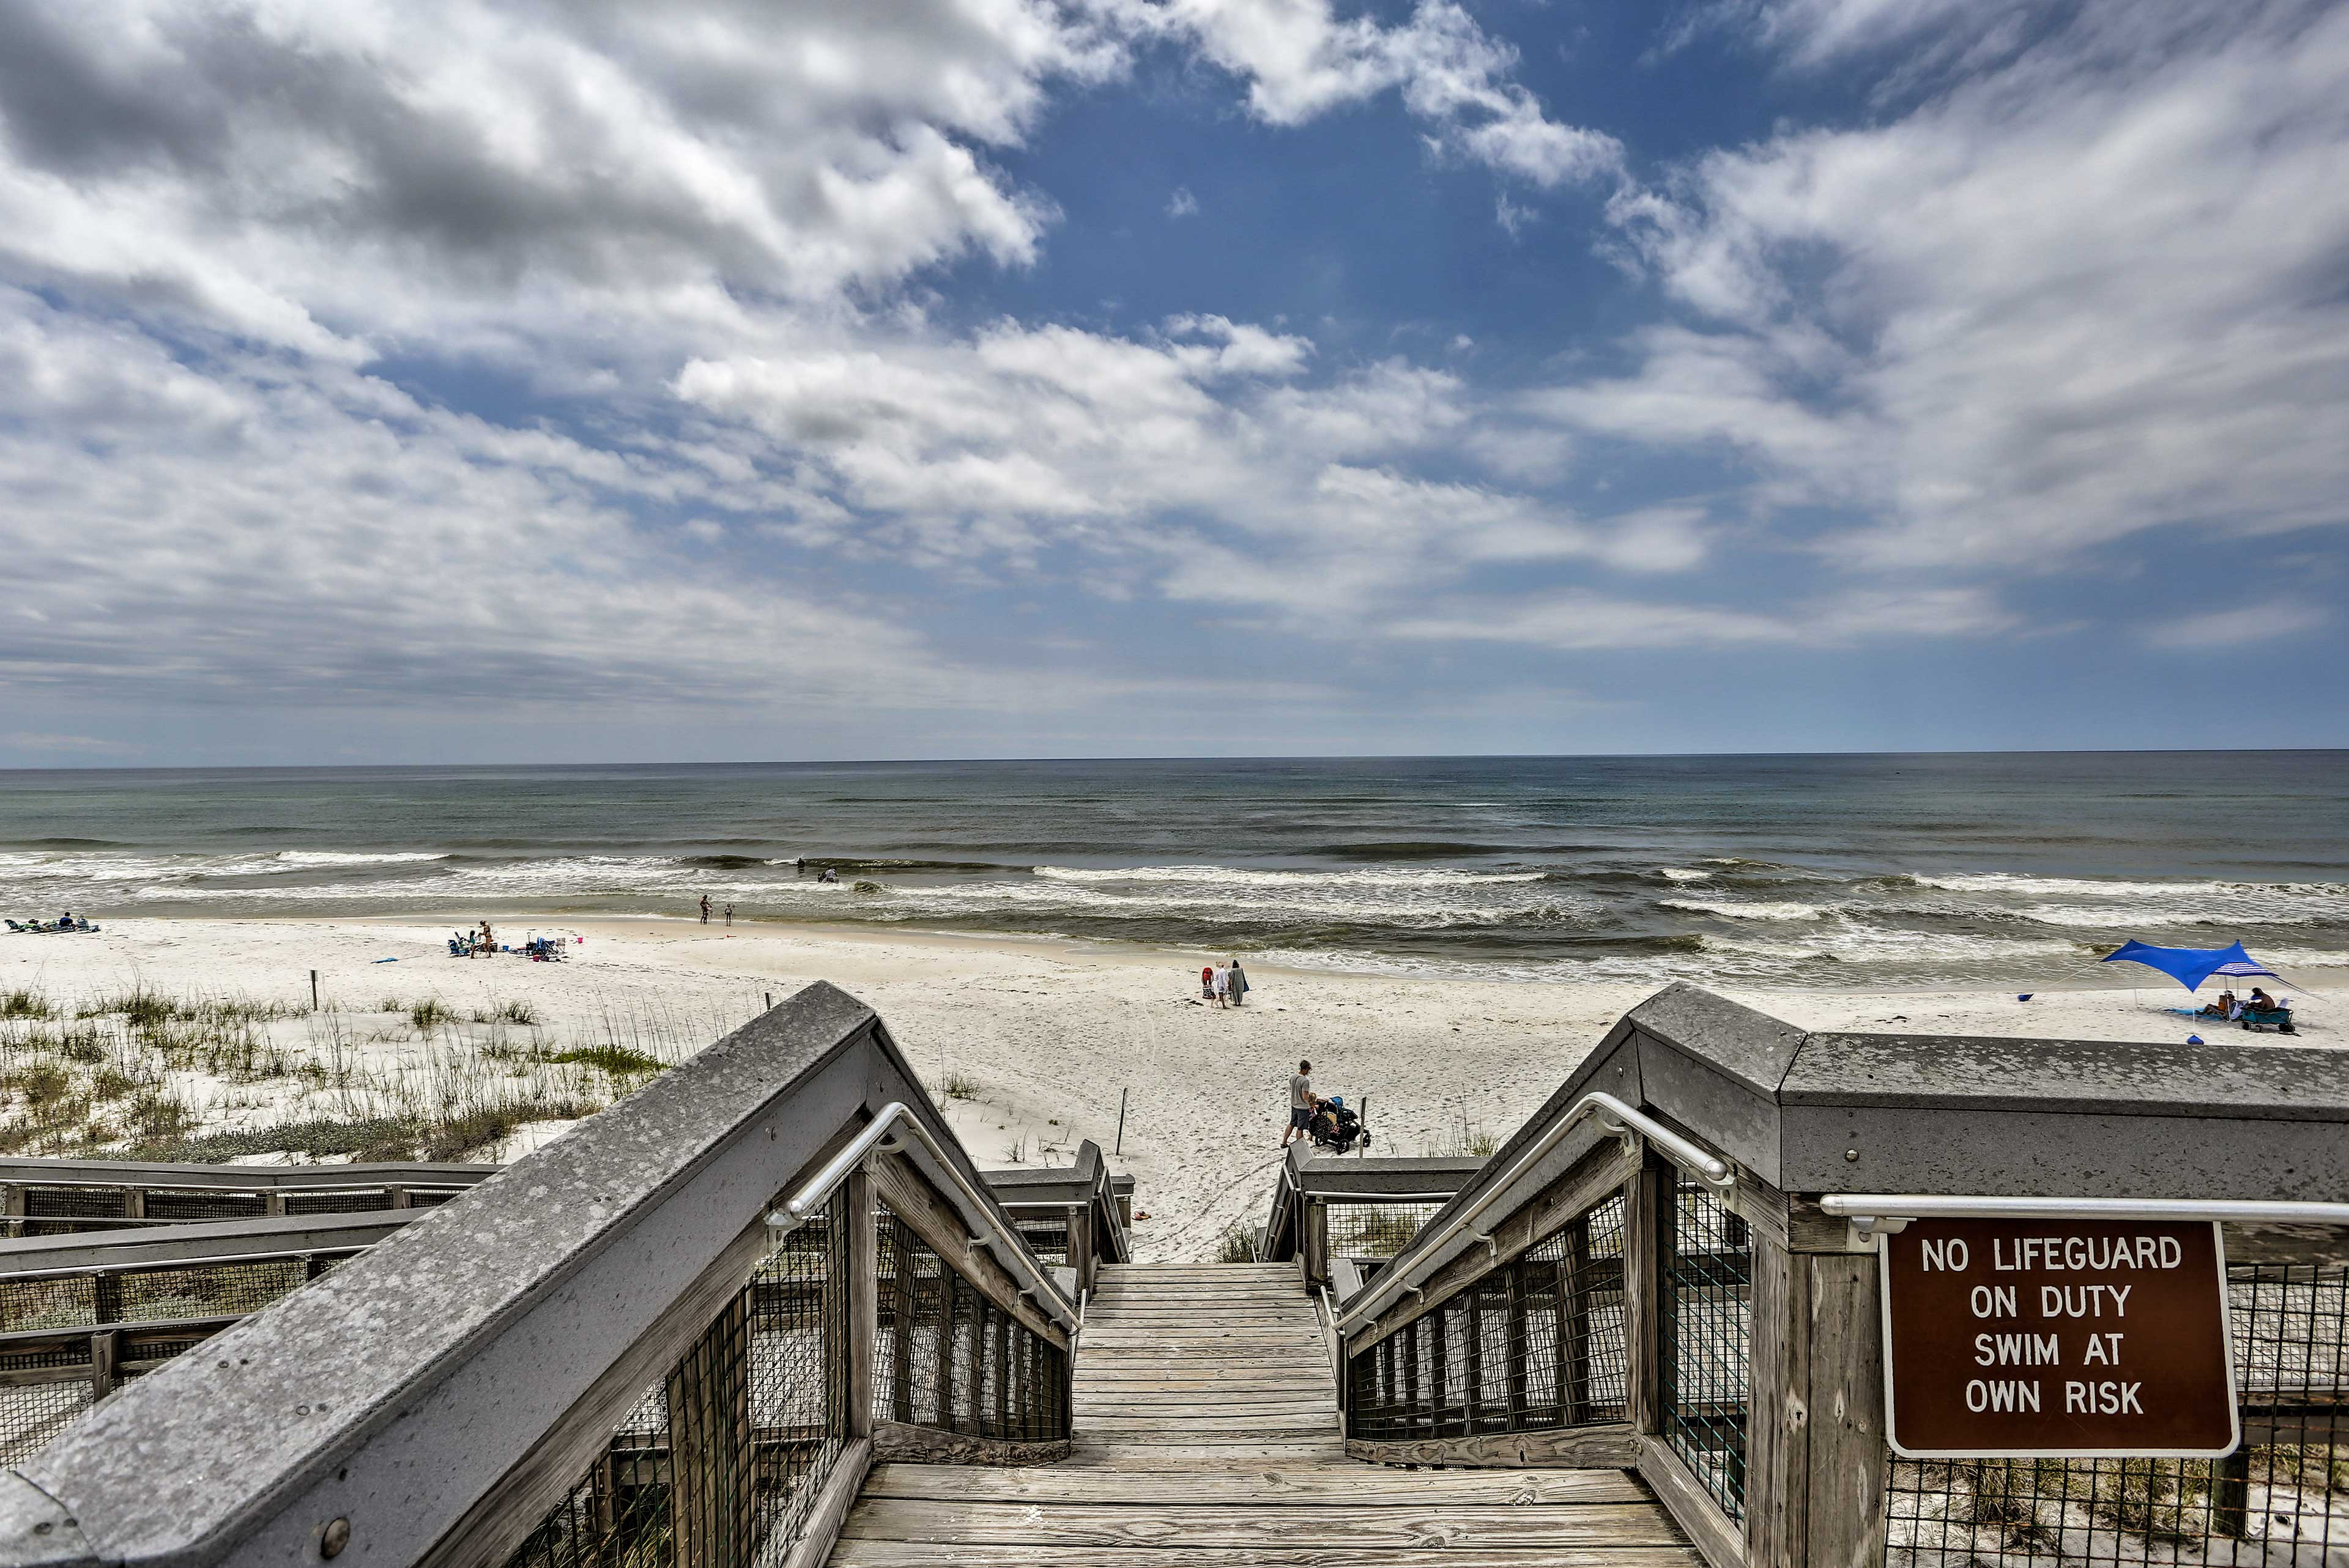 Head to the beach to sink your toes in the sand and play in the surf.